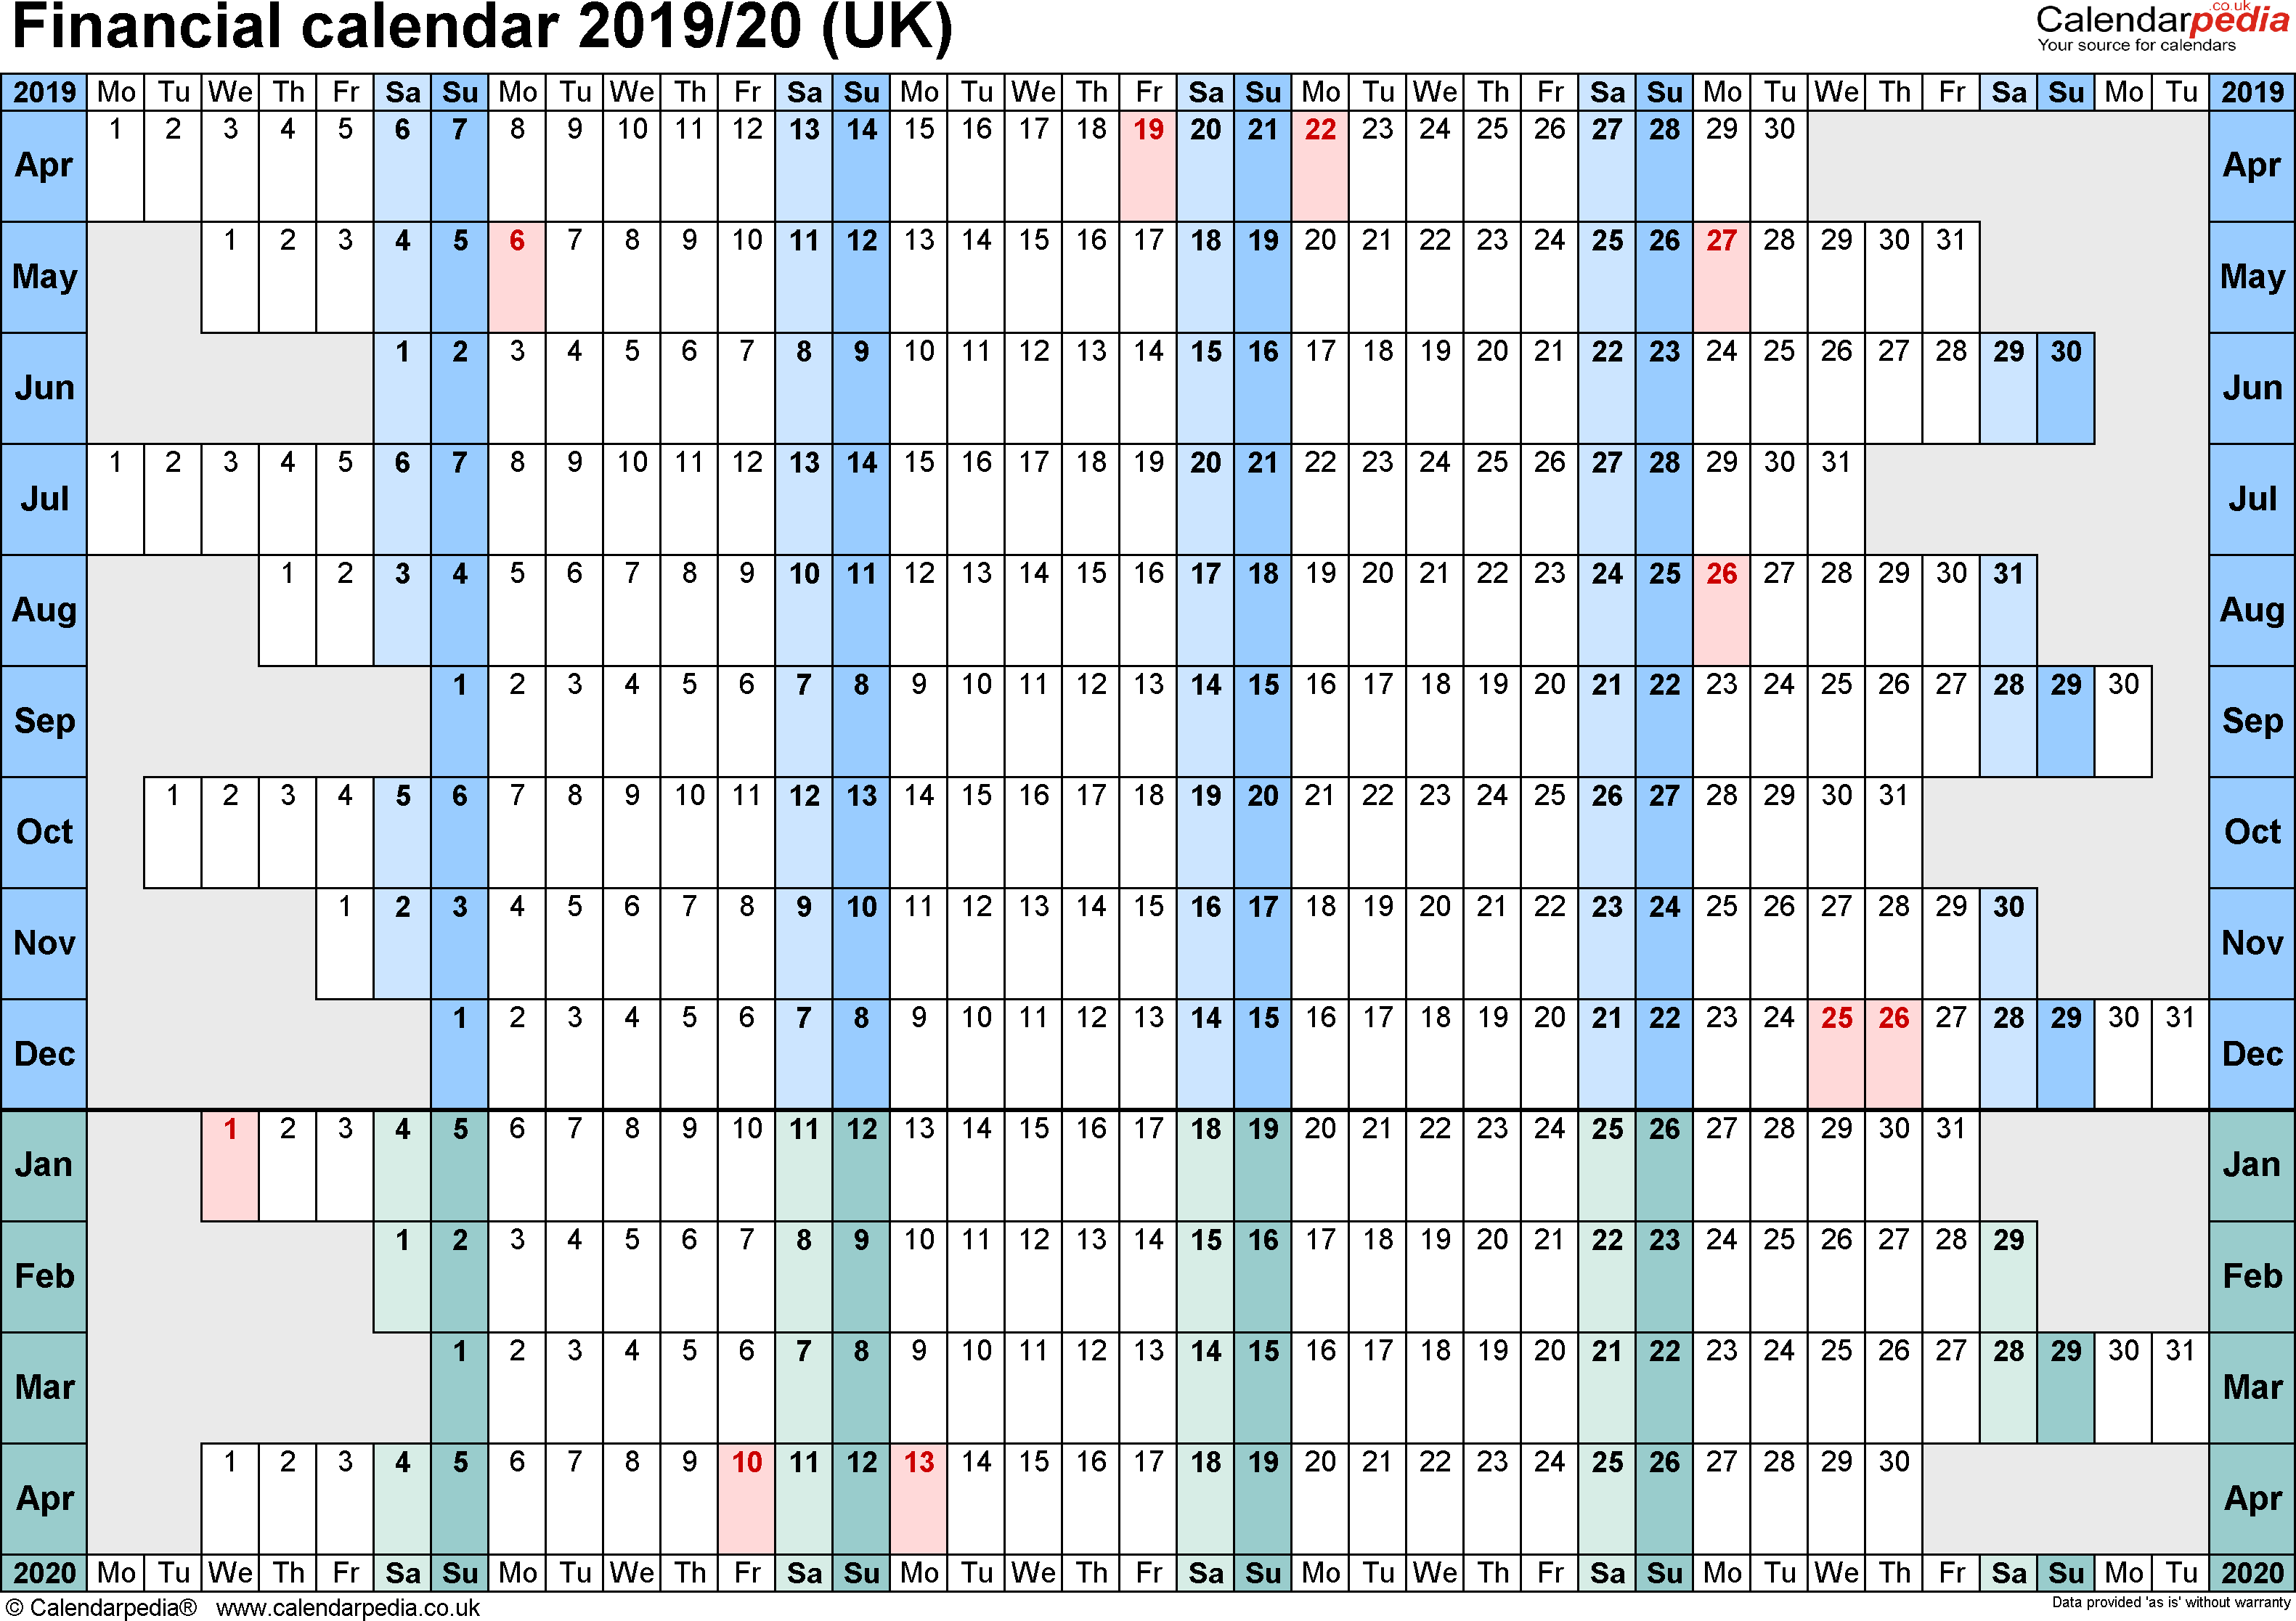 Fiscal Year 2019 Calendar Usa With Financial Calendars 20 UK In PDF Format